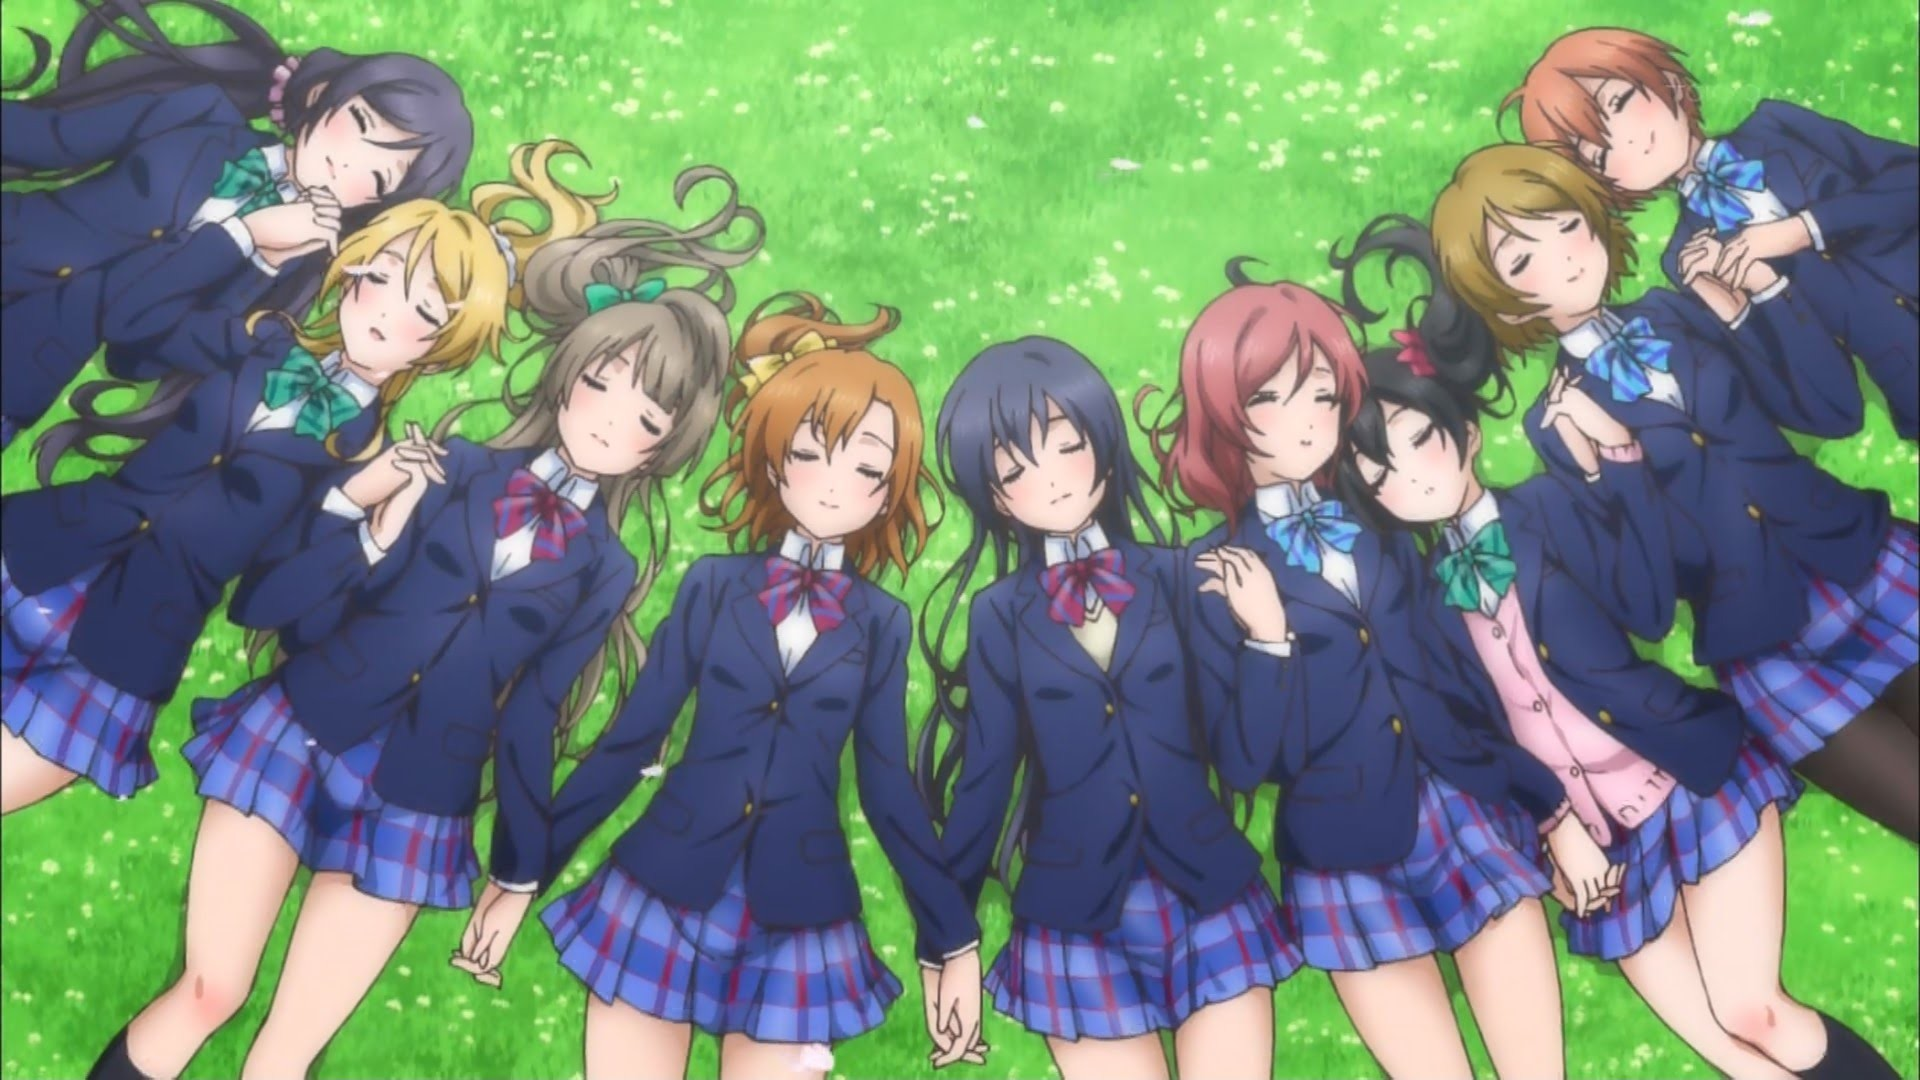 Love Live Wallpaper Hd New: Love Live Wallpapers (65+ Images